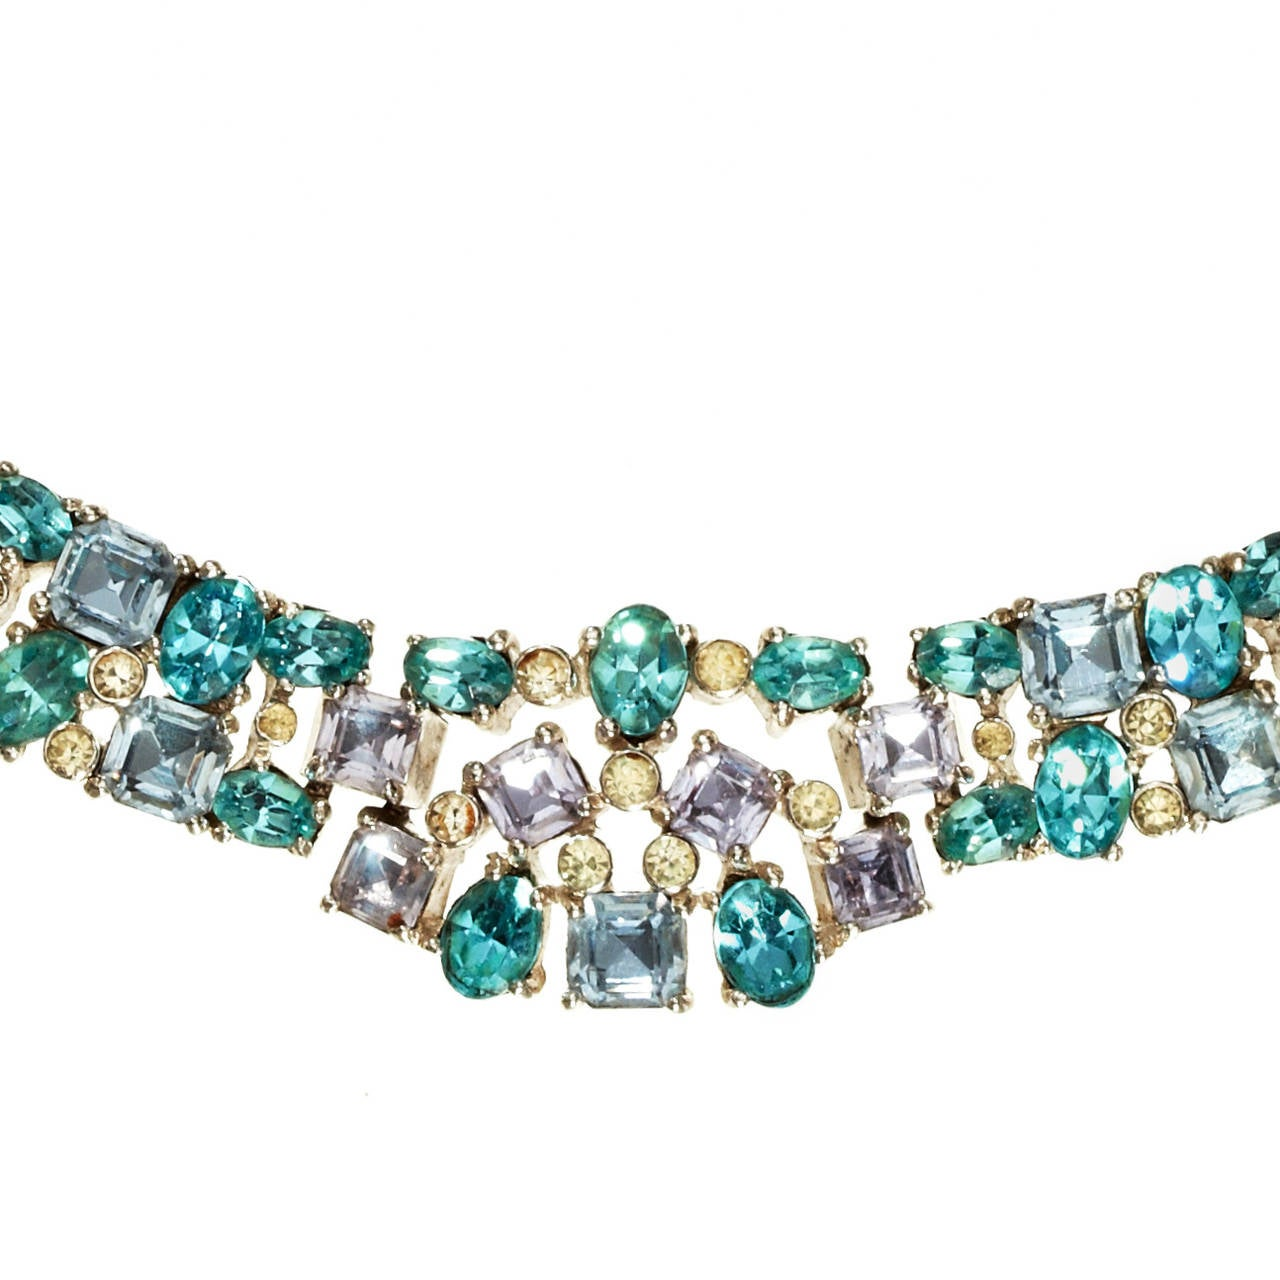 A stunning Jomaz articulated rhinestone chocker necklace, designed by Joseph Mazer. Made up of oval and square cut rhinestones in shades of pale blue, cornflower, turquoise and lilac, and small crystal rhinestones set into a graduated rhodium plated